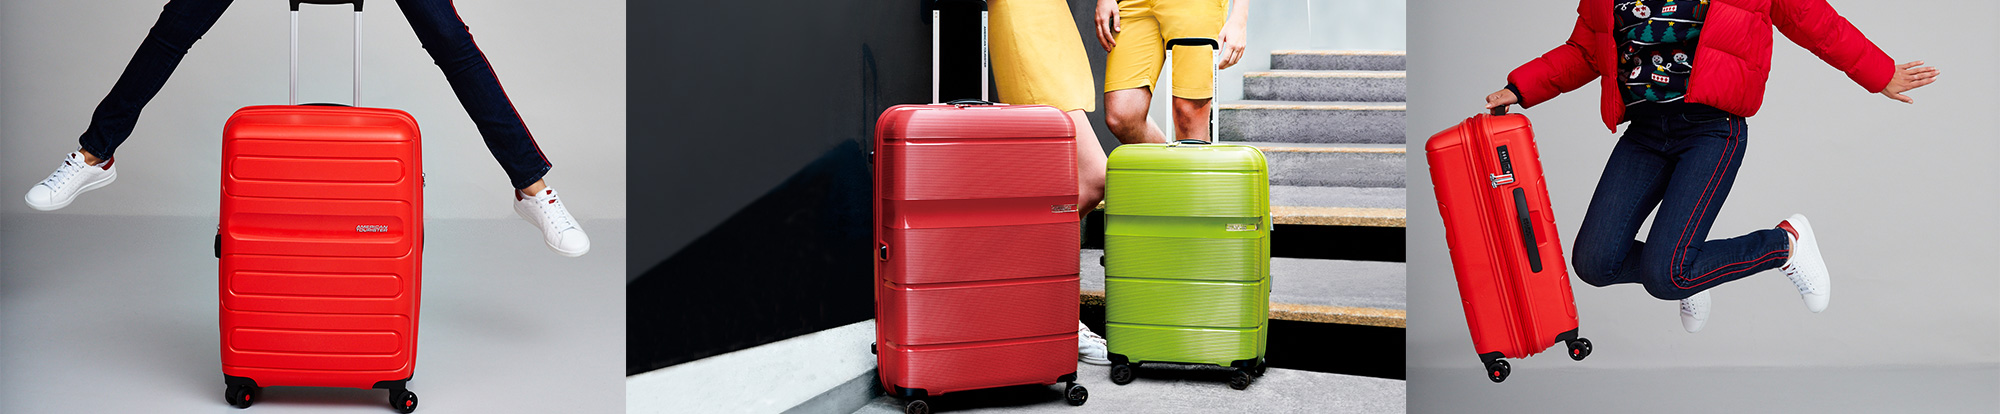 Banner Marca American Tourister